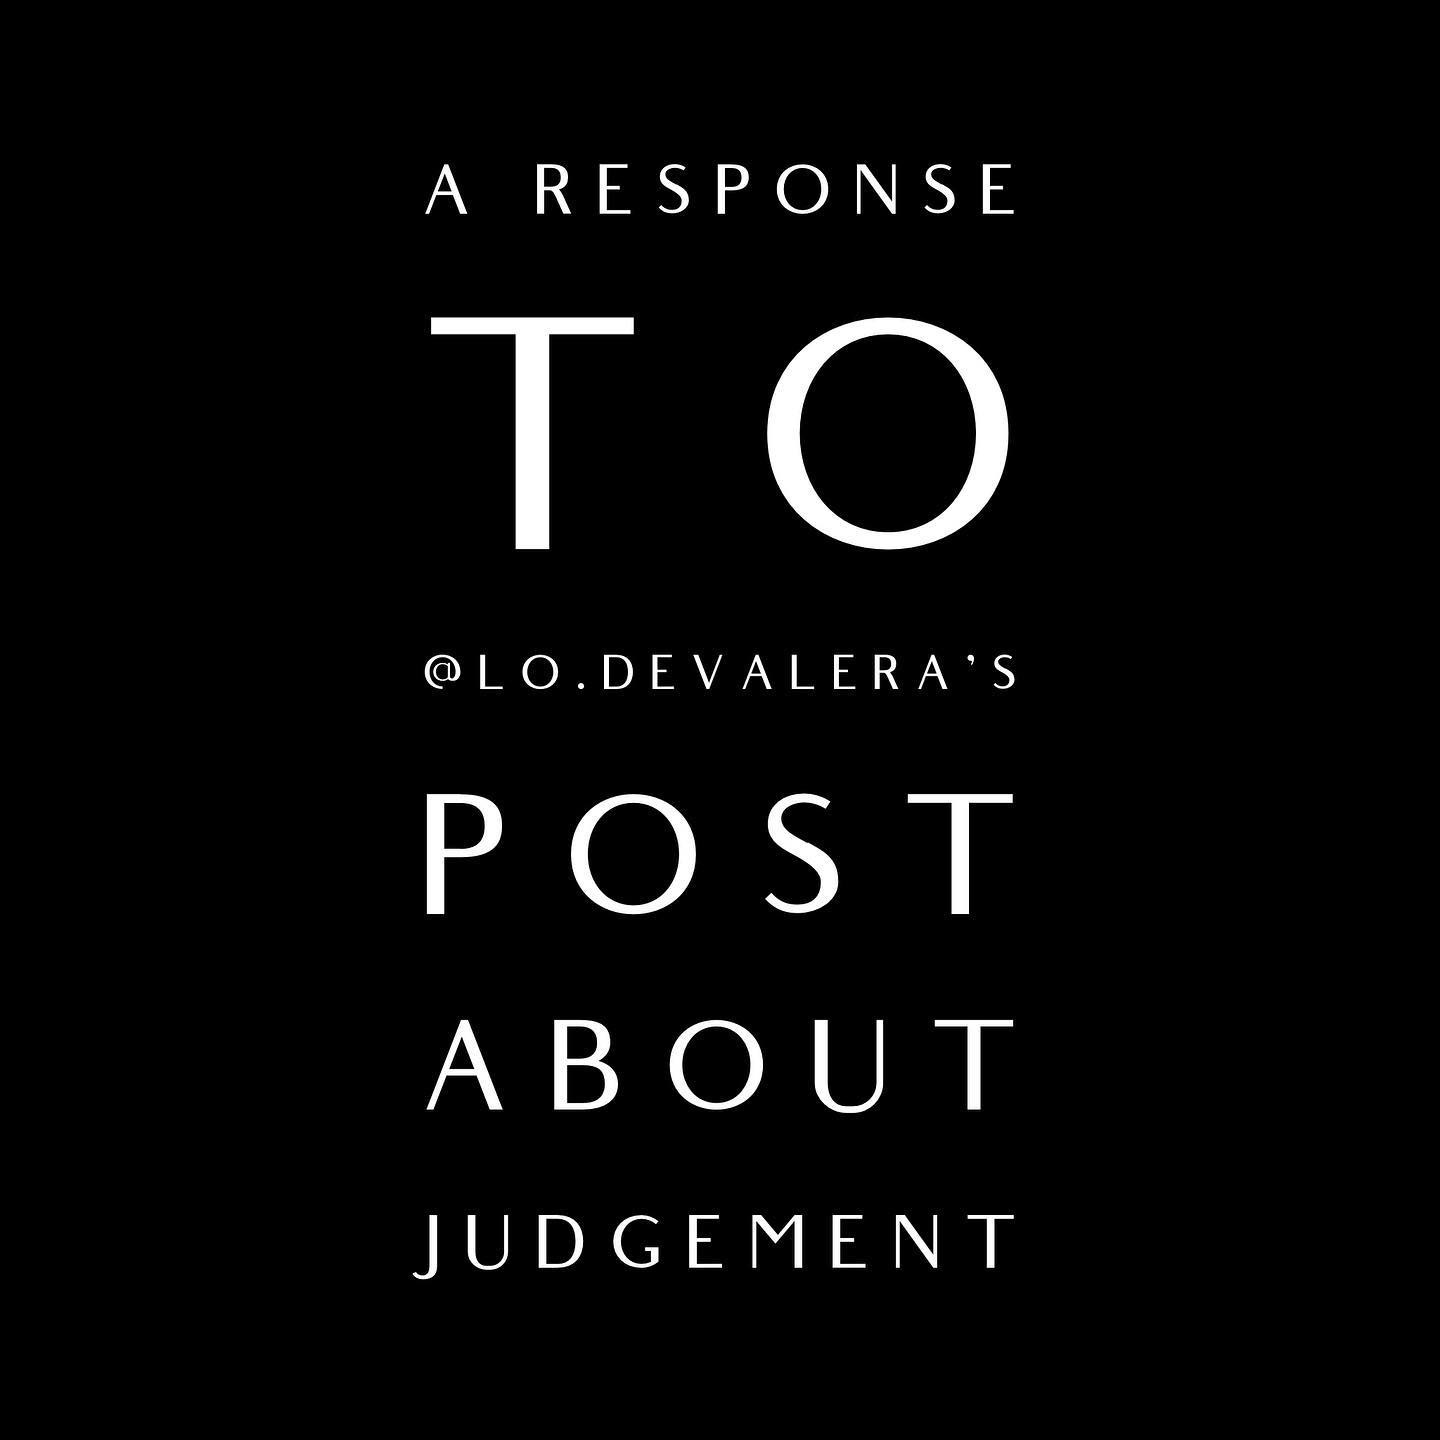 A response to @lo.devalera's post about judgement